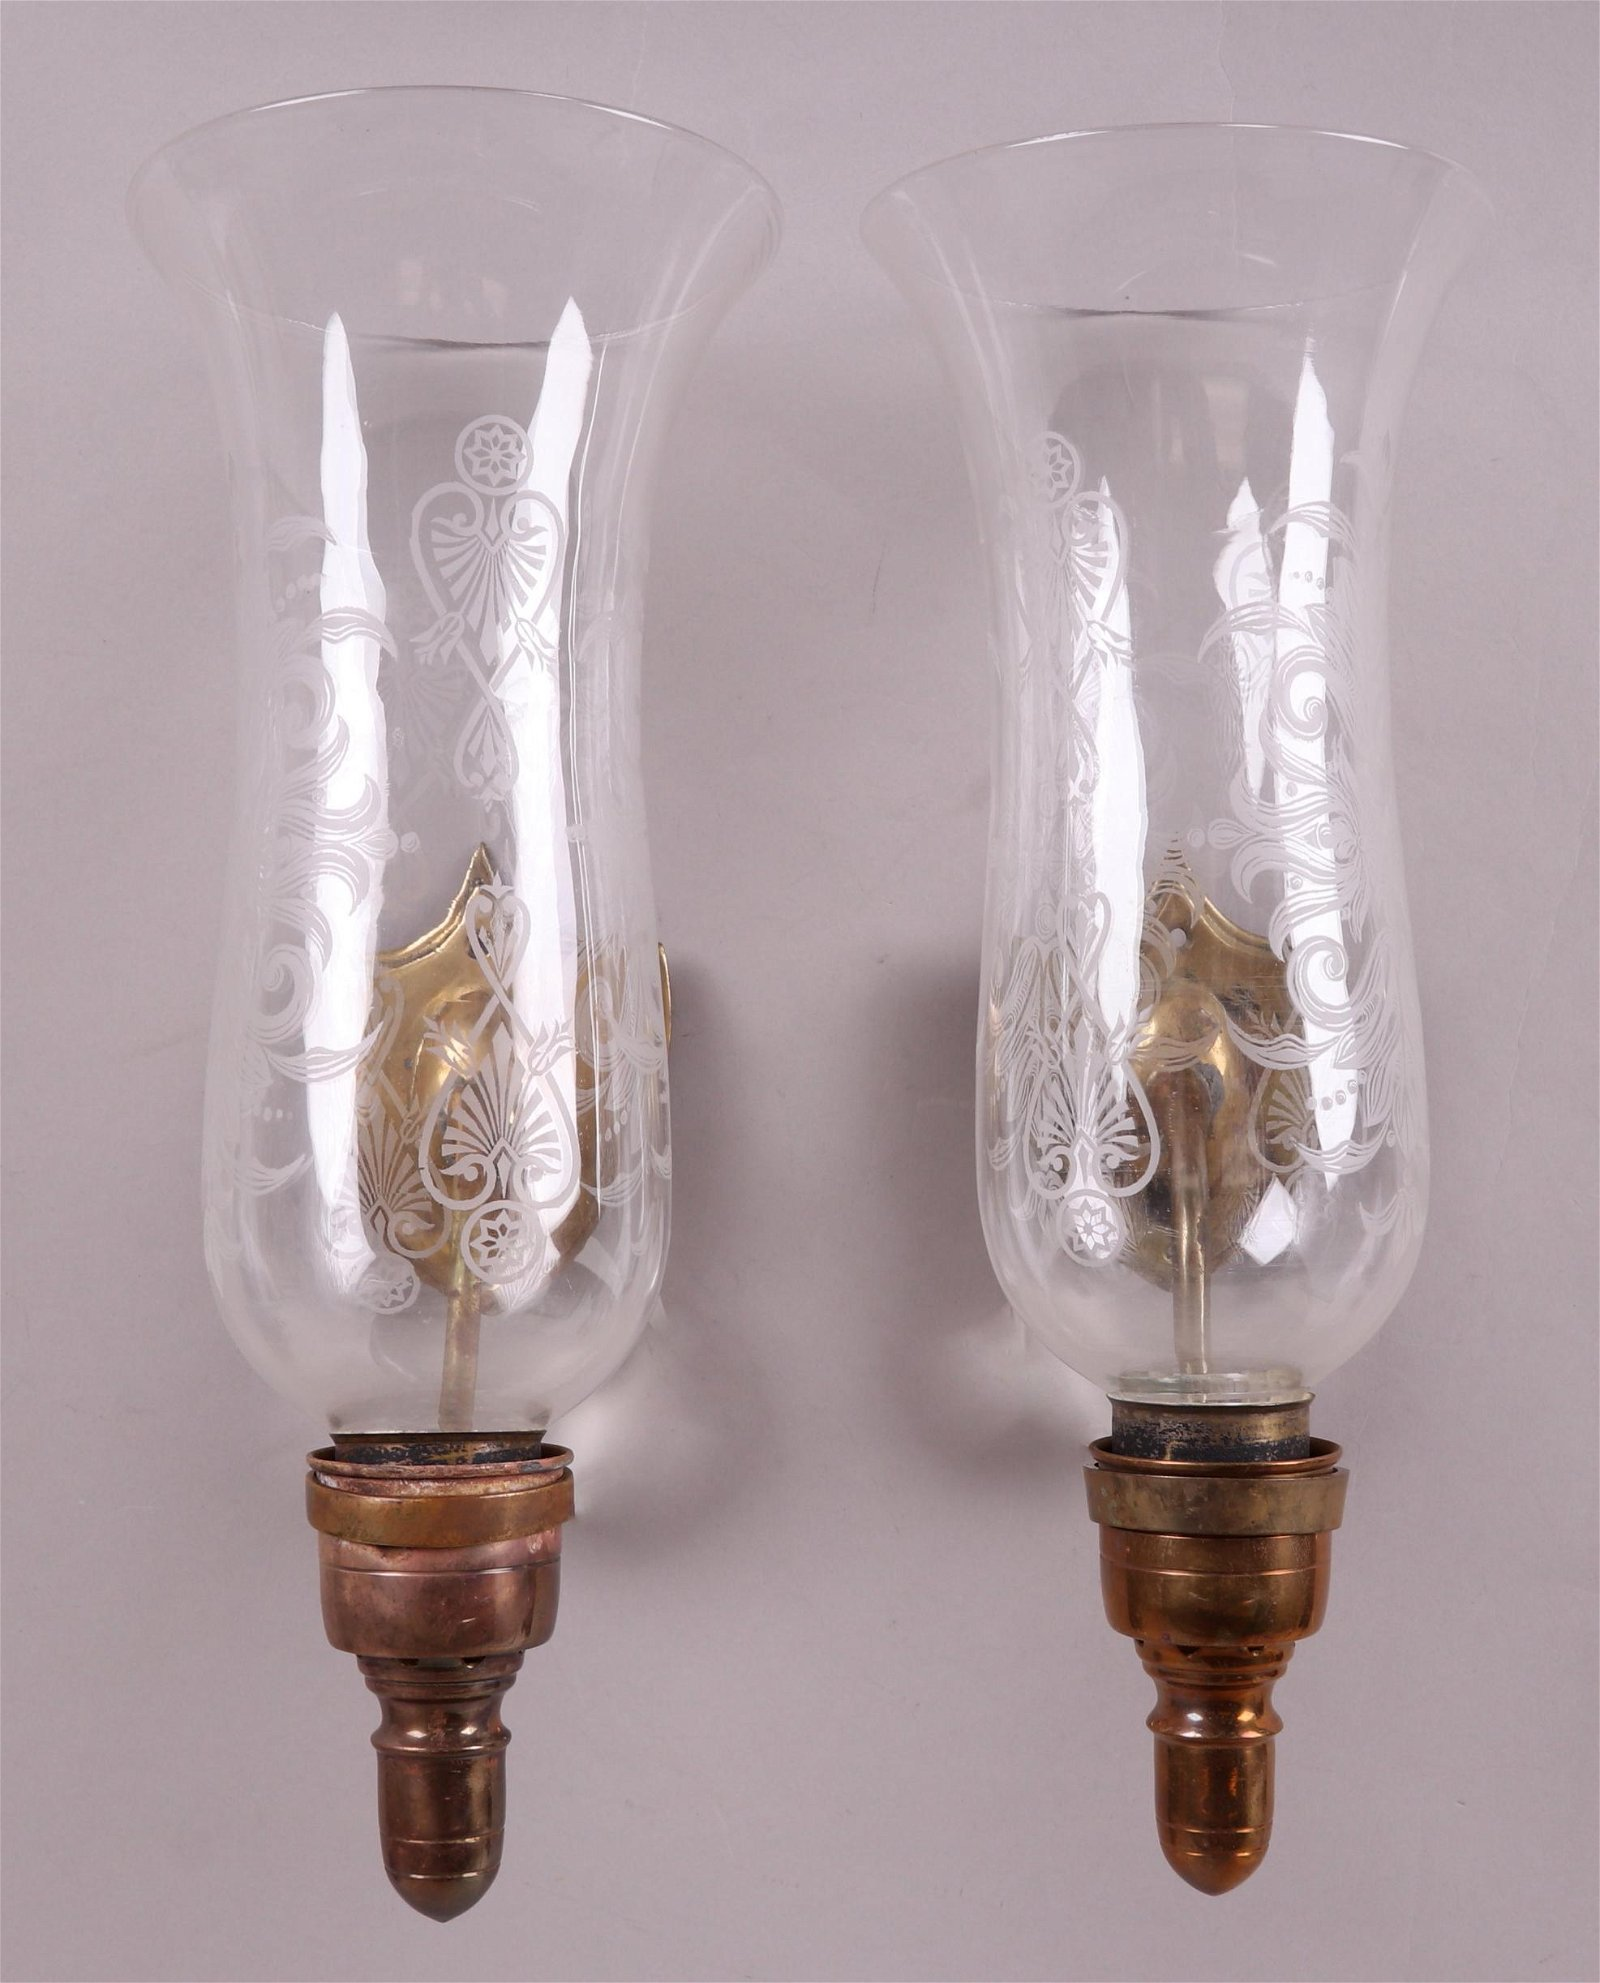 A Pair of Hurricane Wall Sconces